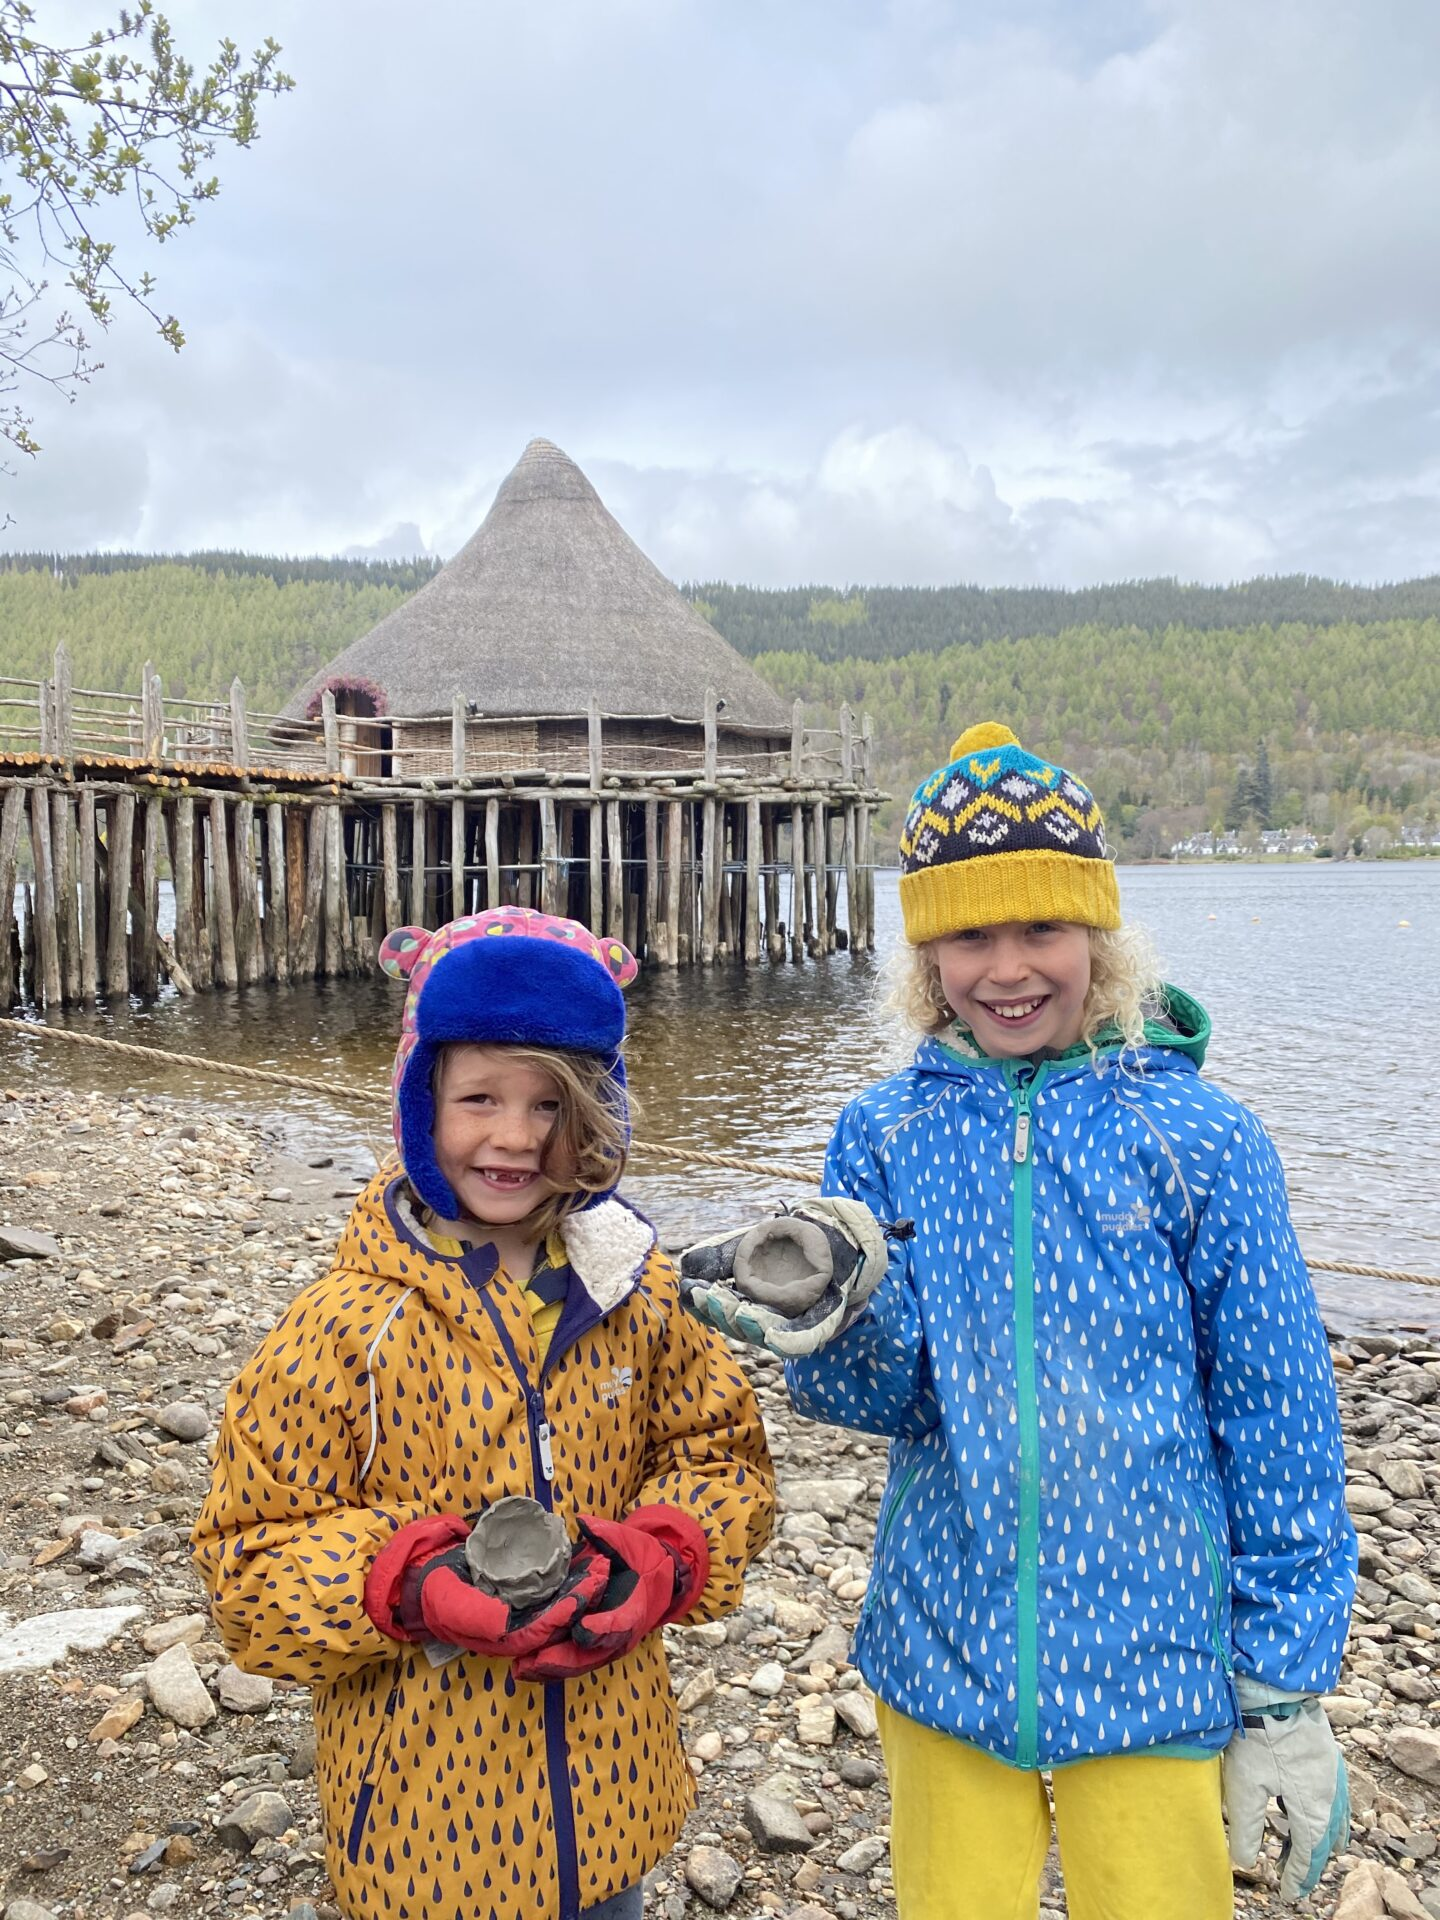 children holding clay bowls outside the Scottish crannog centre with blue and yellow jackets and hats on